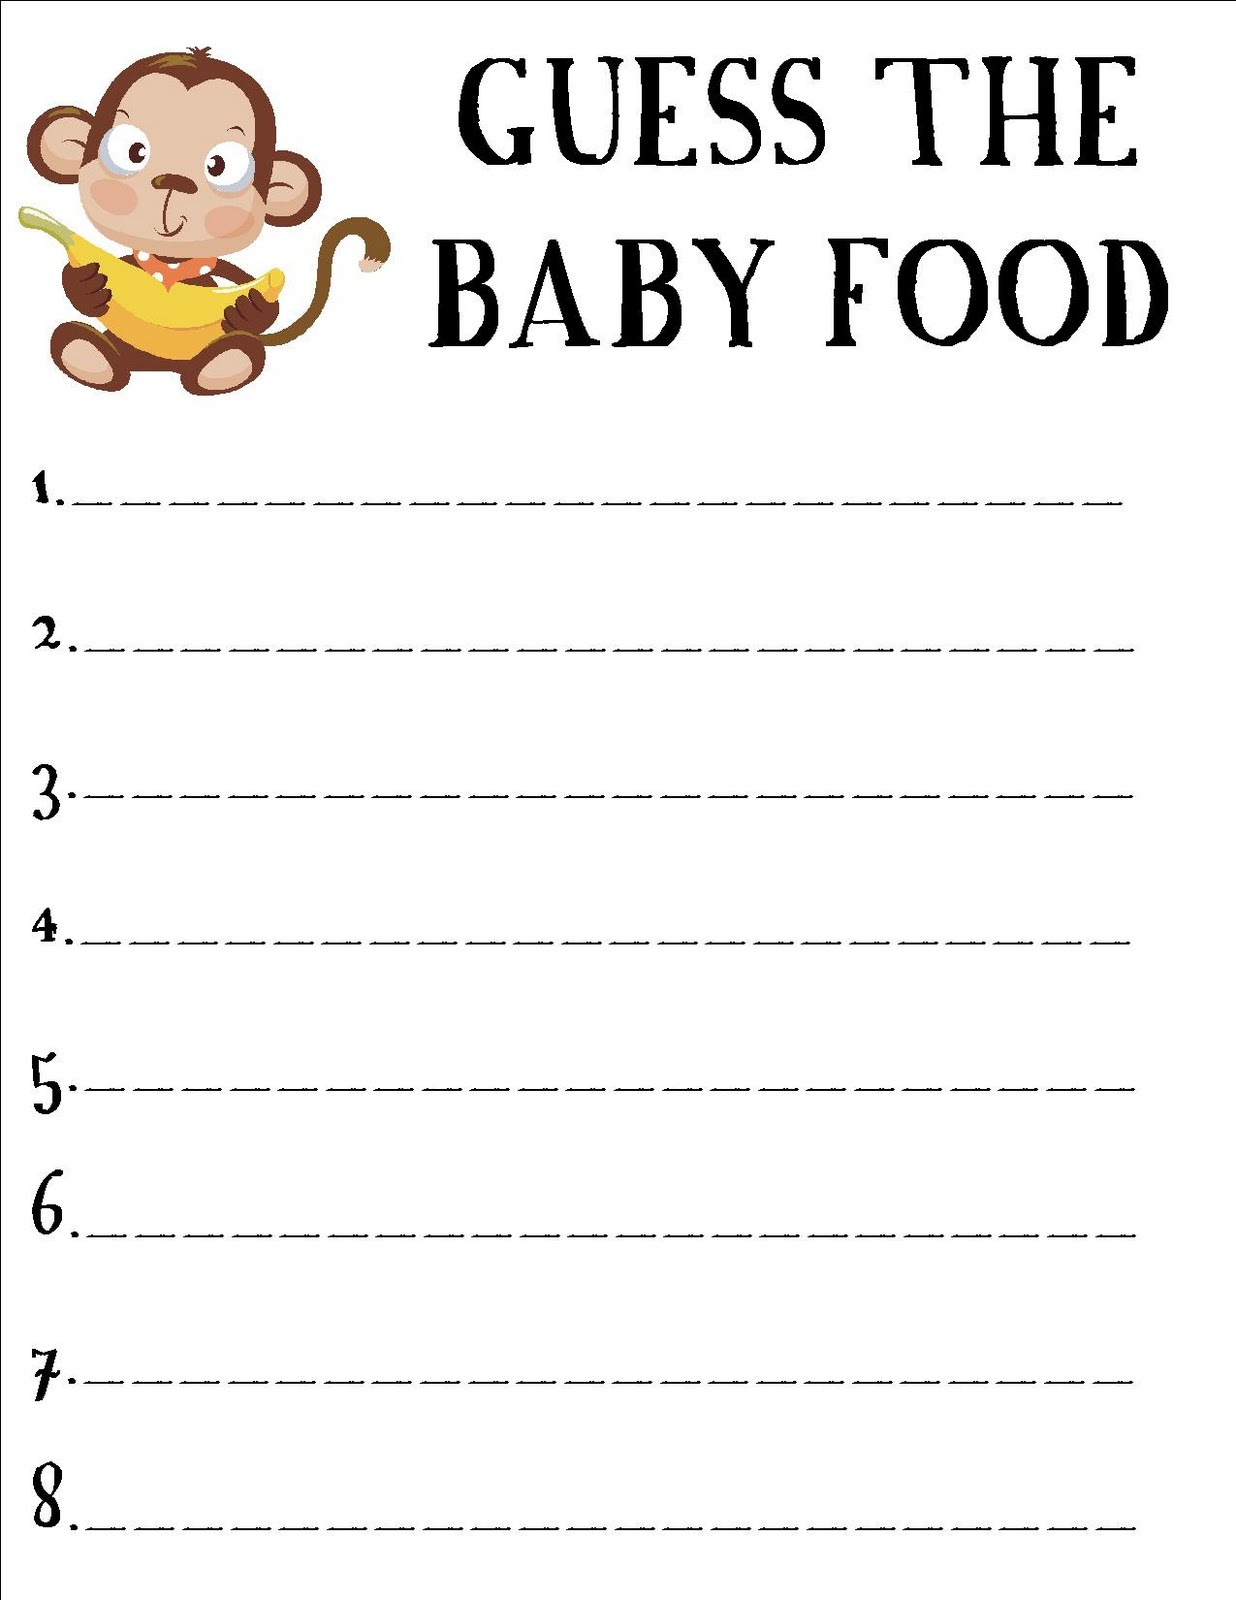 Irresistible image intended for baby food game printable